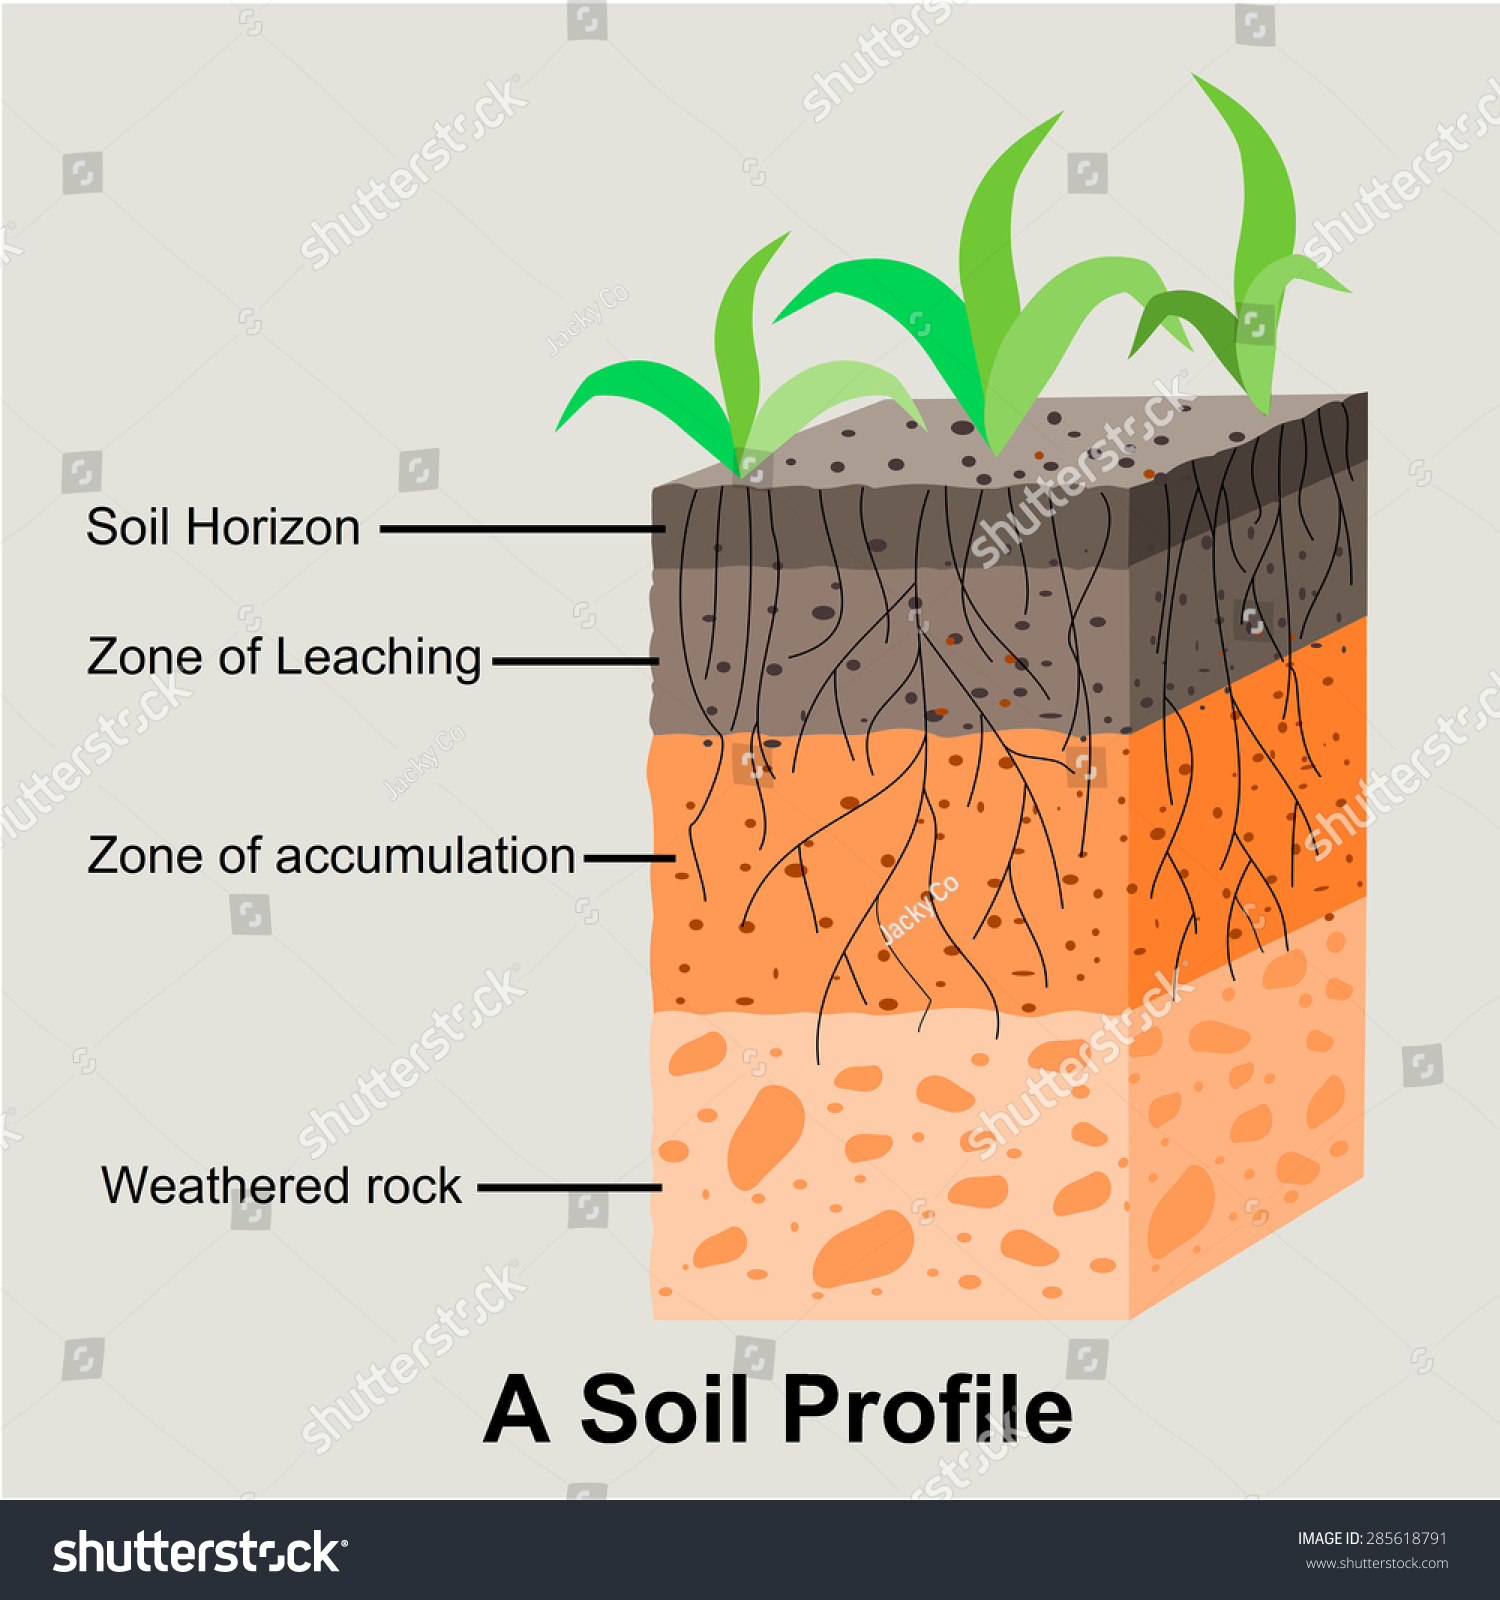 Soil formation soil horizons stock vector 285618791 for Why the soil forms layers in water